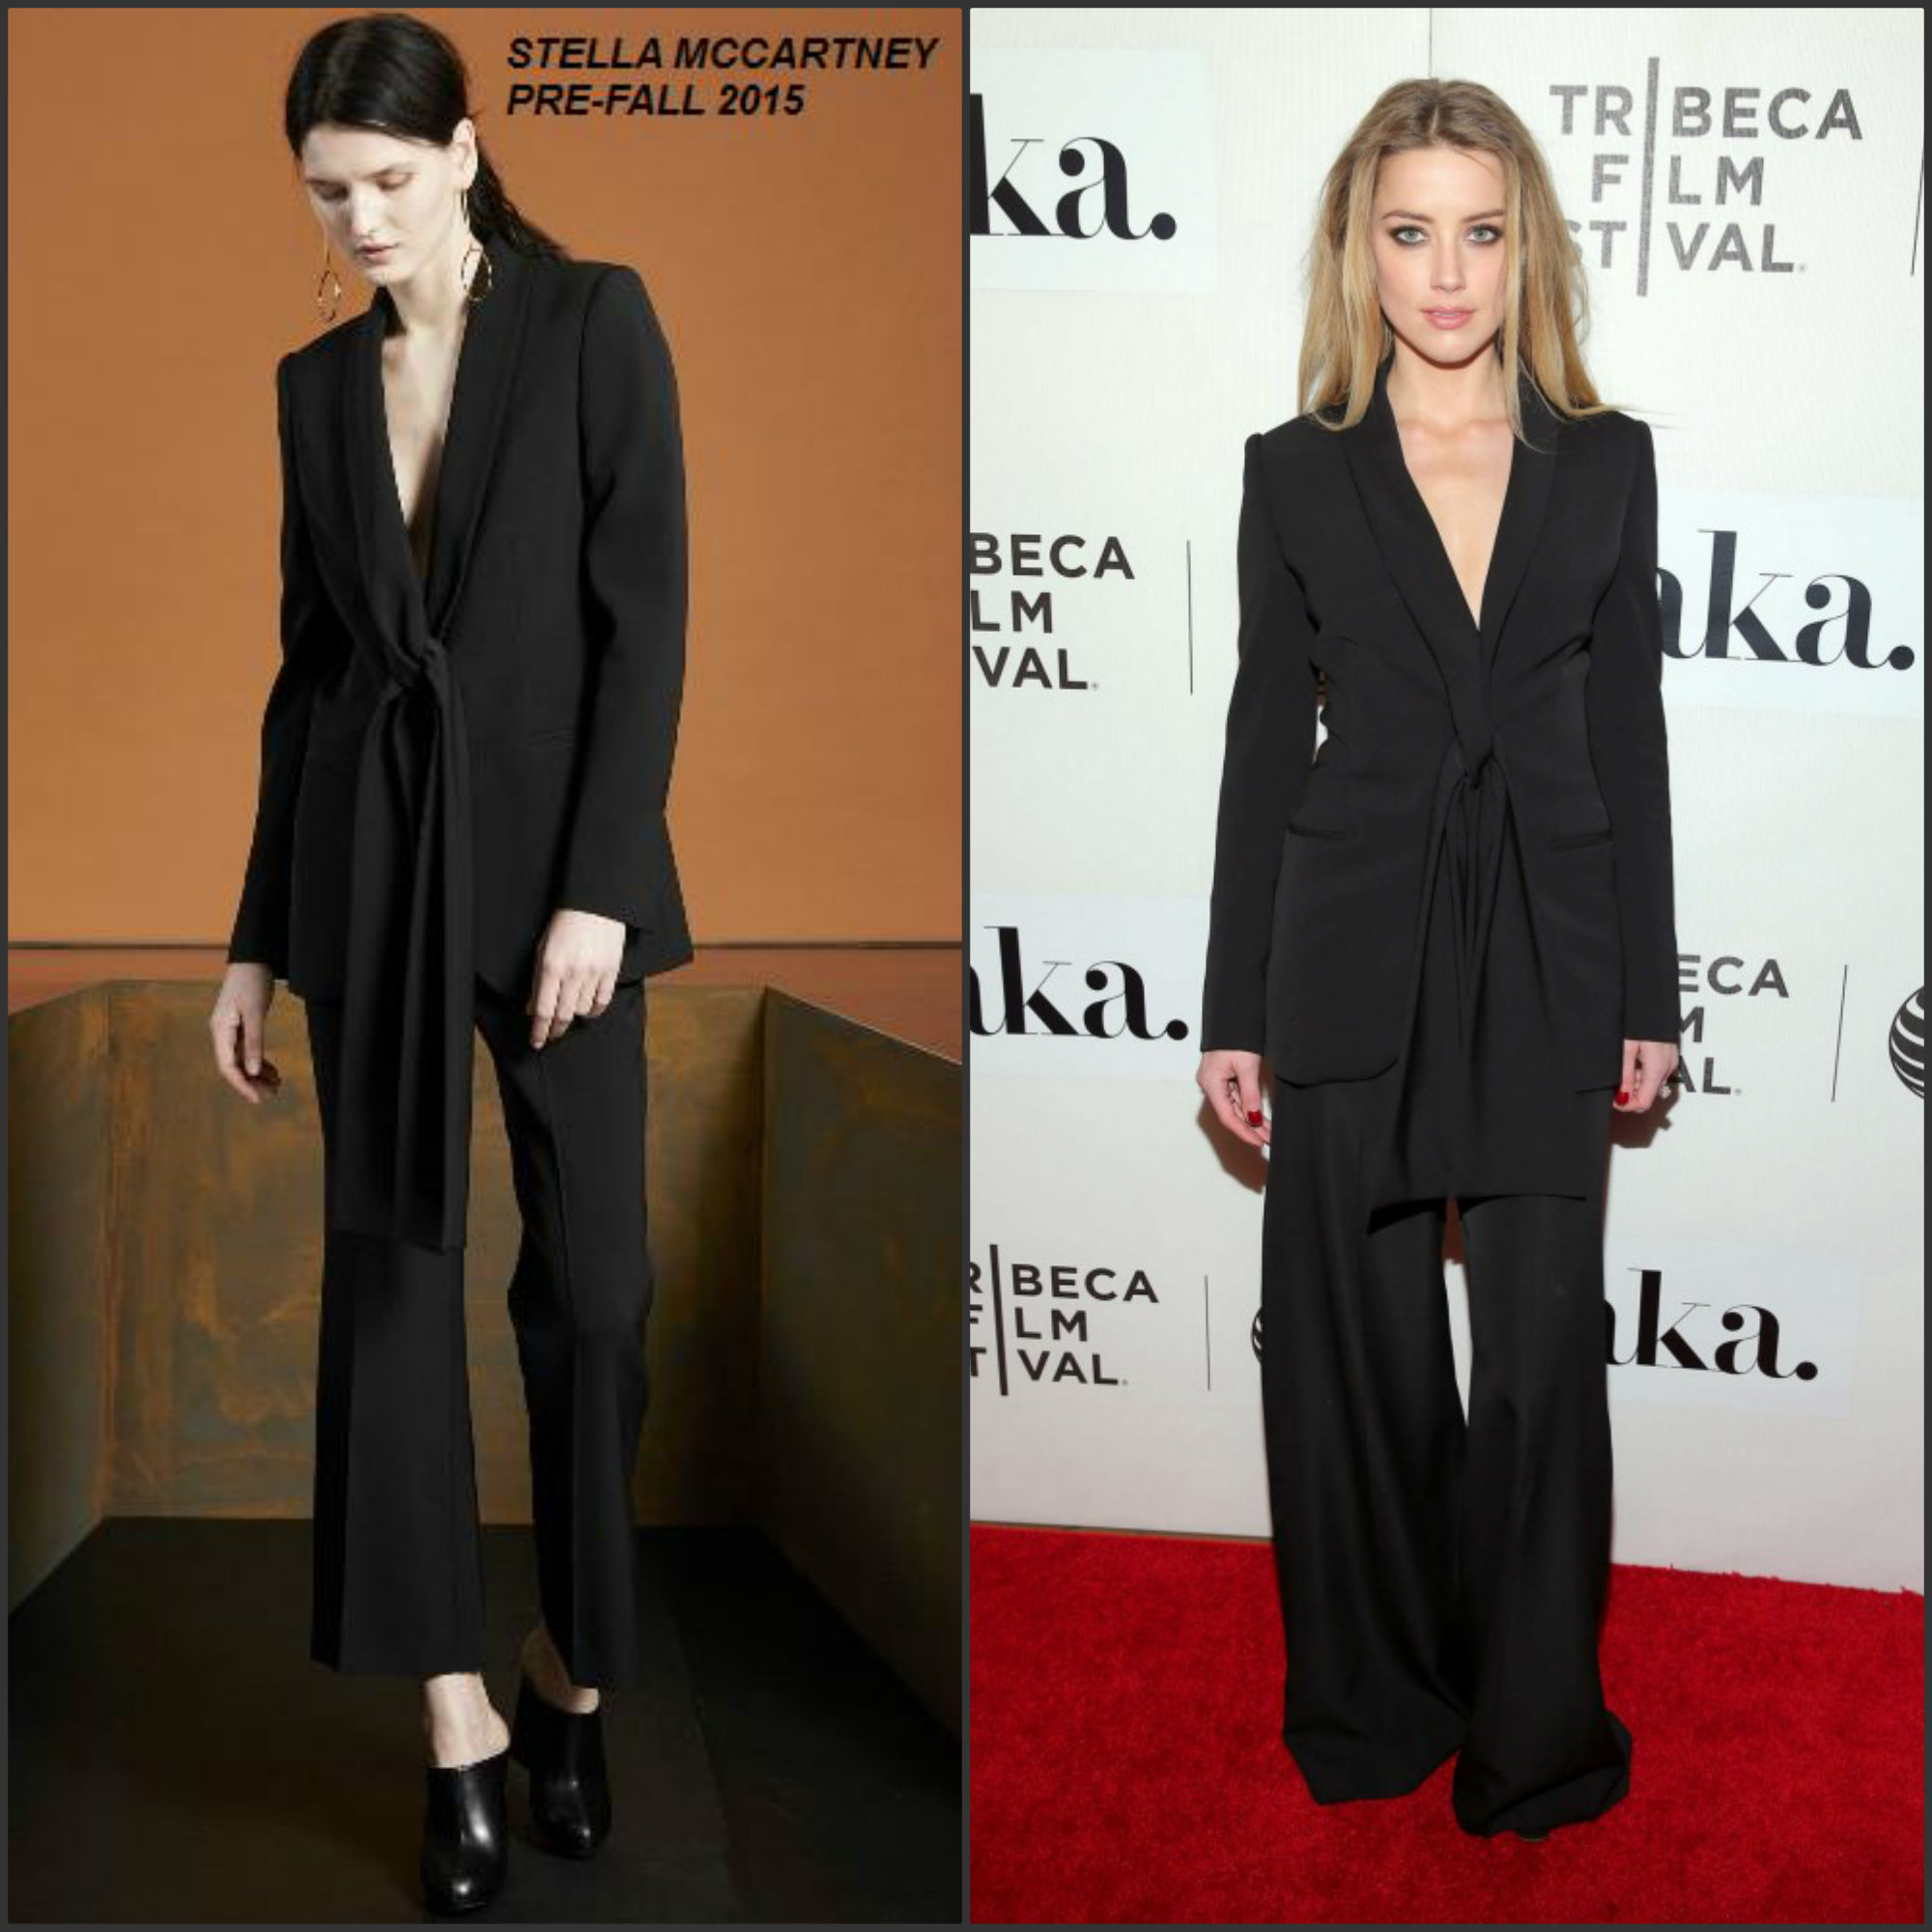 Amber-Heard-in-Stella-McCartney-at-the-Adderall-Daires-2015-Tribeca-Film-Festival-Premiere